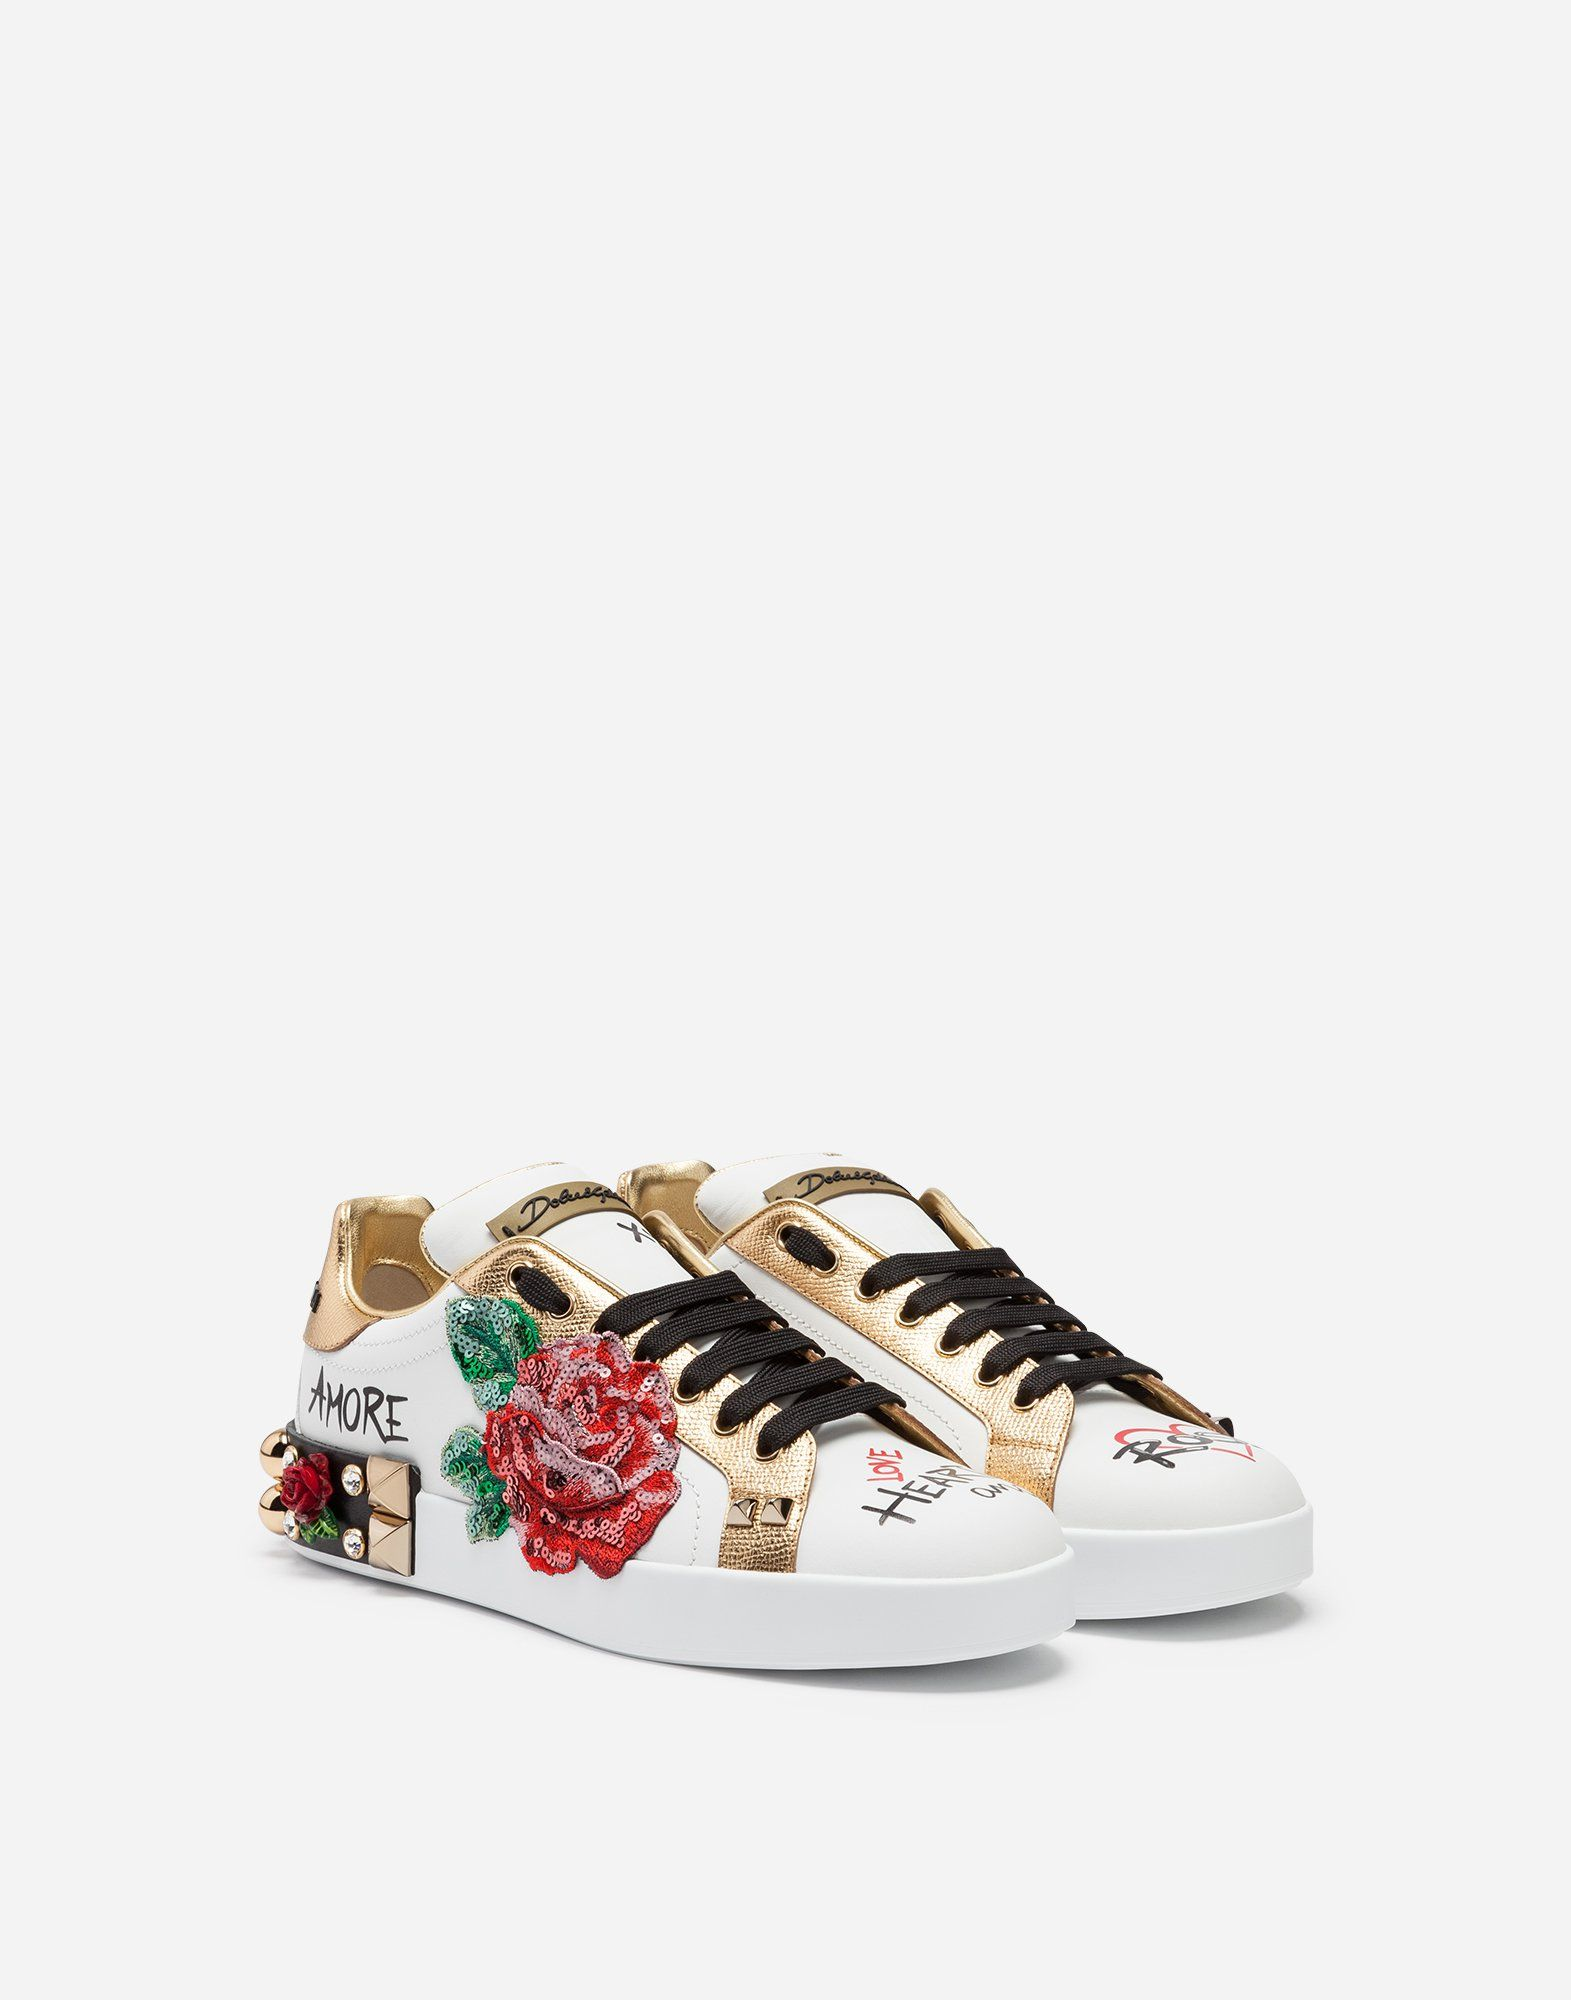 LADIES WOMENS TRAINERS EMBROIDERY PRINT EMBELLISHED LACE UP SNEAKERS SHOES SIZE